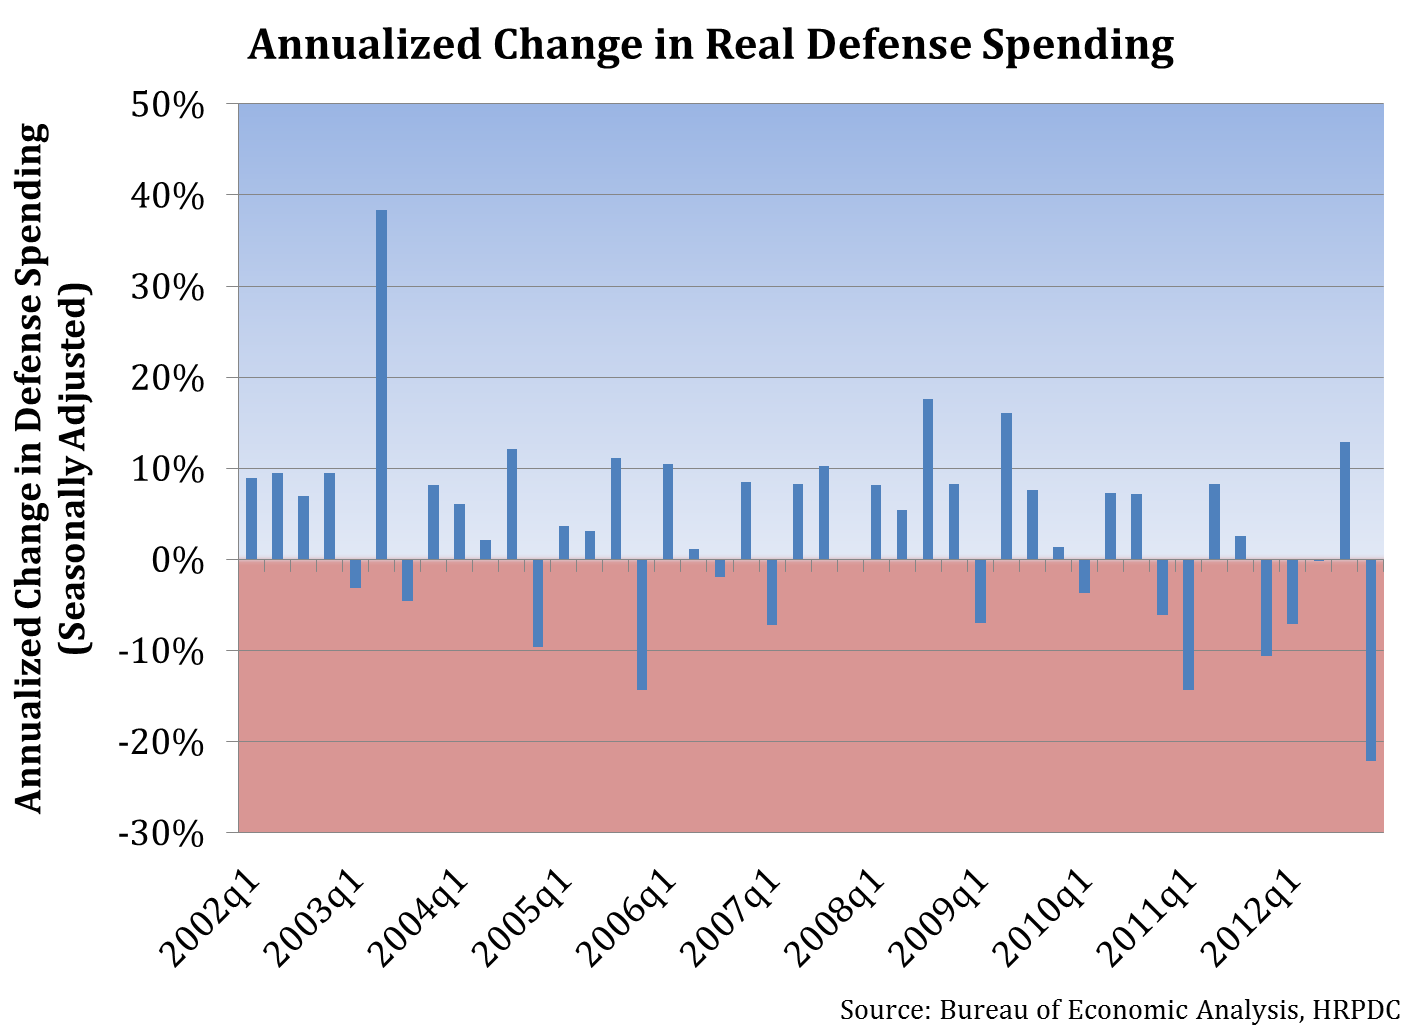 Annualized Change in Real Defense Spending